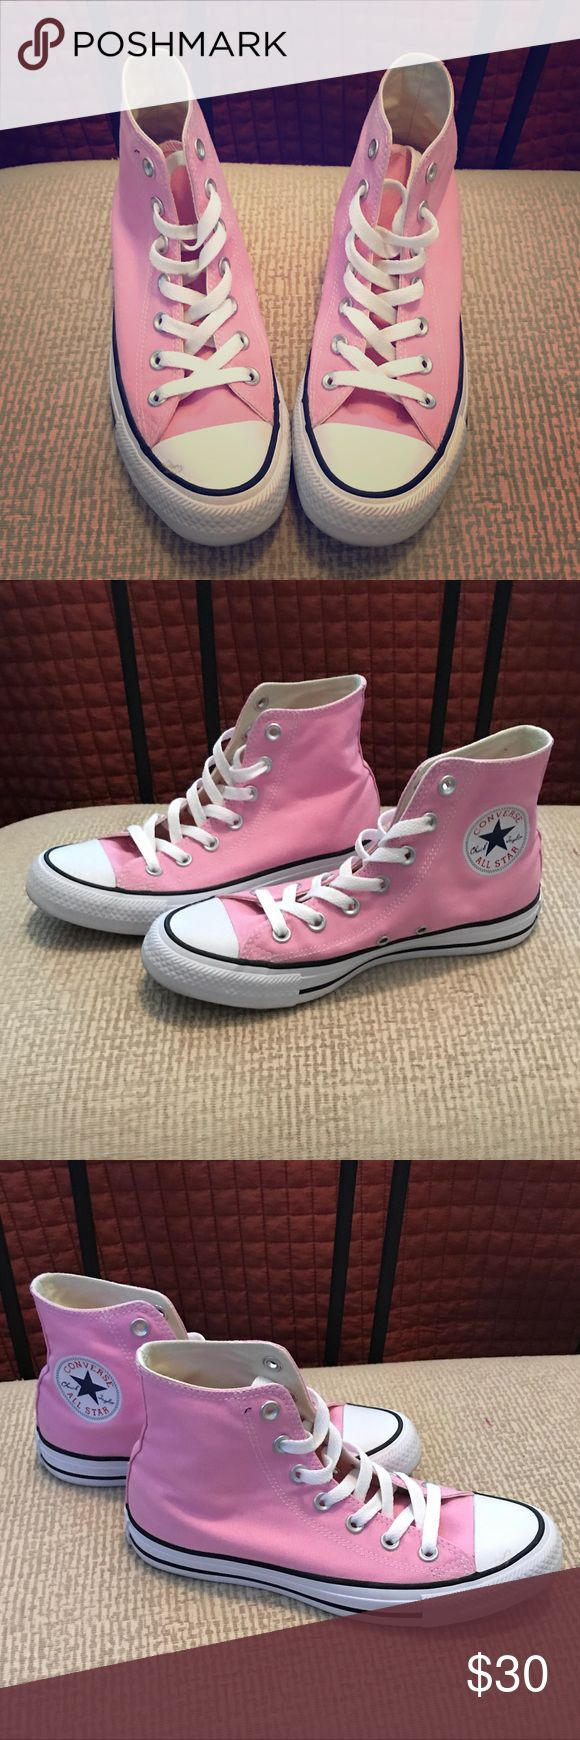 Pink High Top Converse - LIKE NEW! LIKE NEW - Only worn once!  Pink, High-top Converse Women's Size 7 Converse Shoes Sneakers